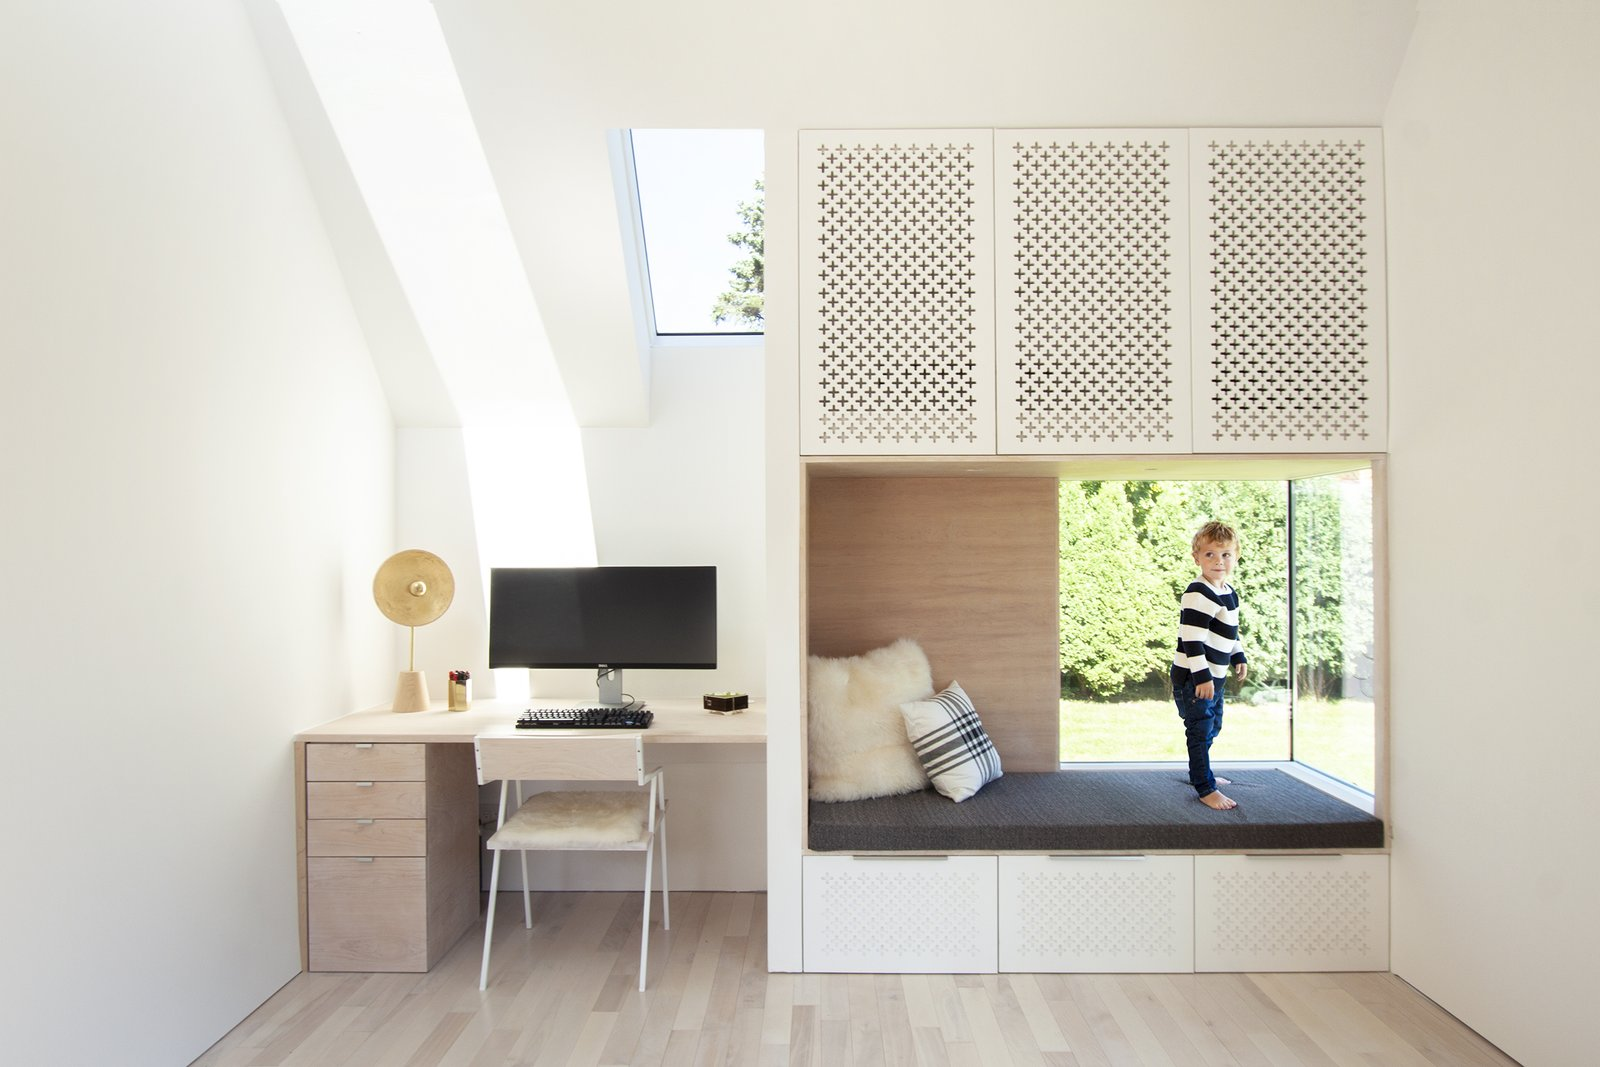 Fish Scale Studio reading nook and home office design